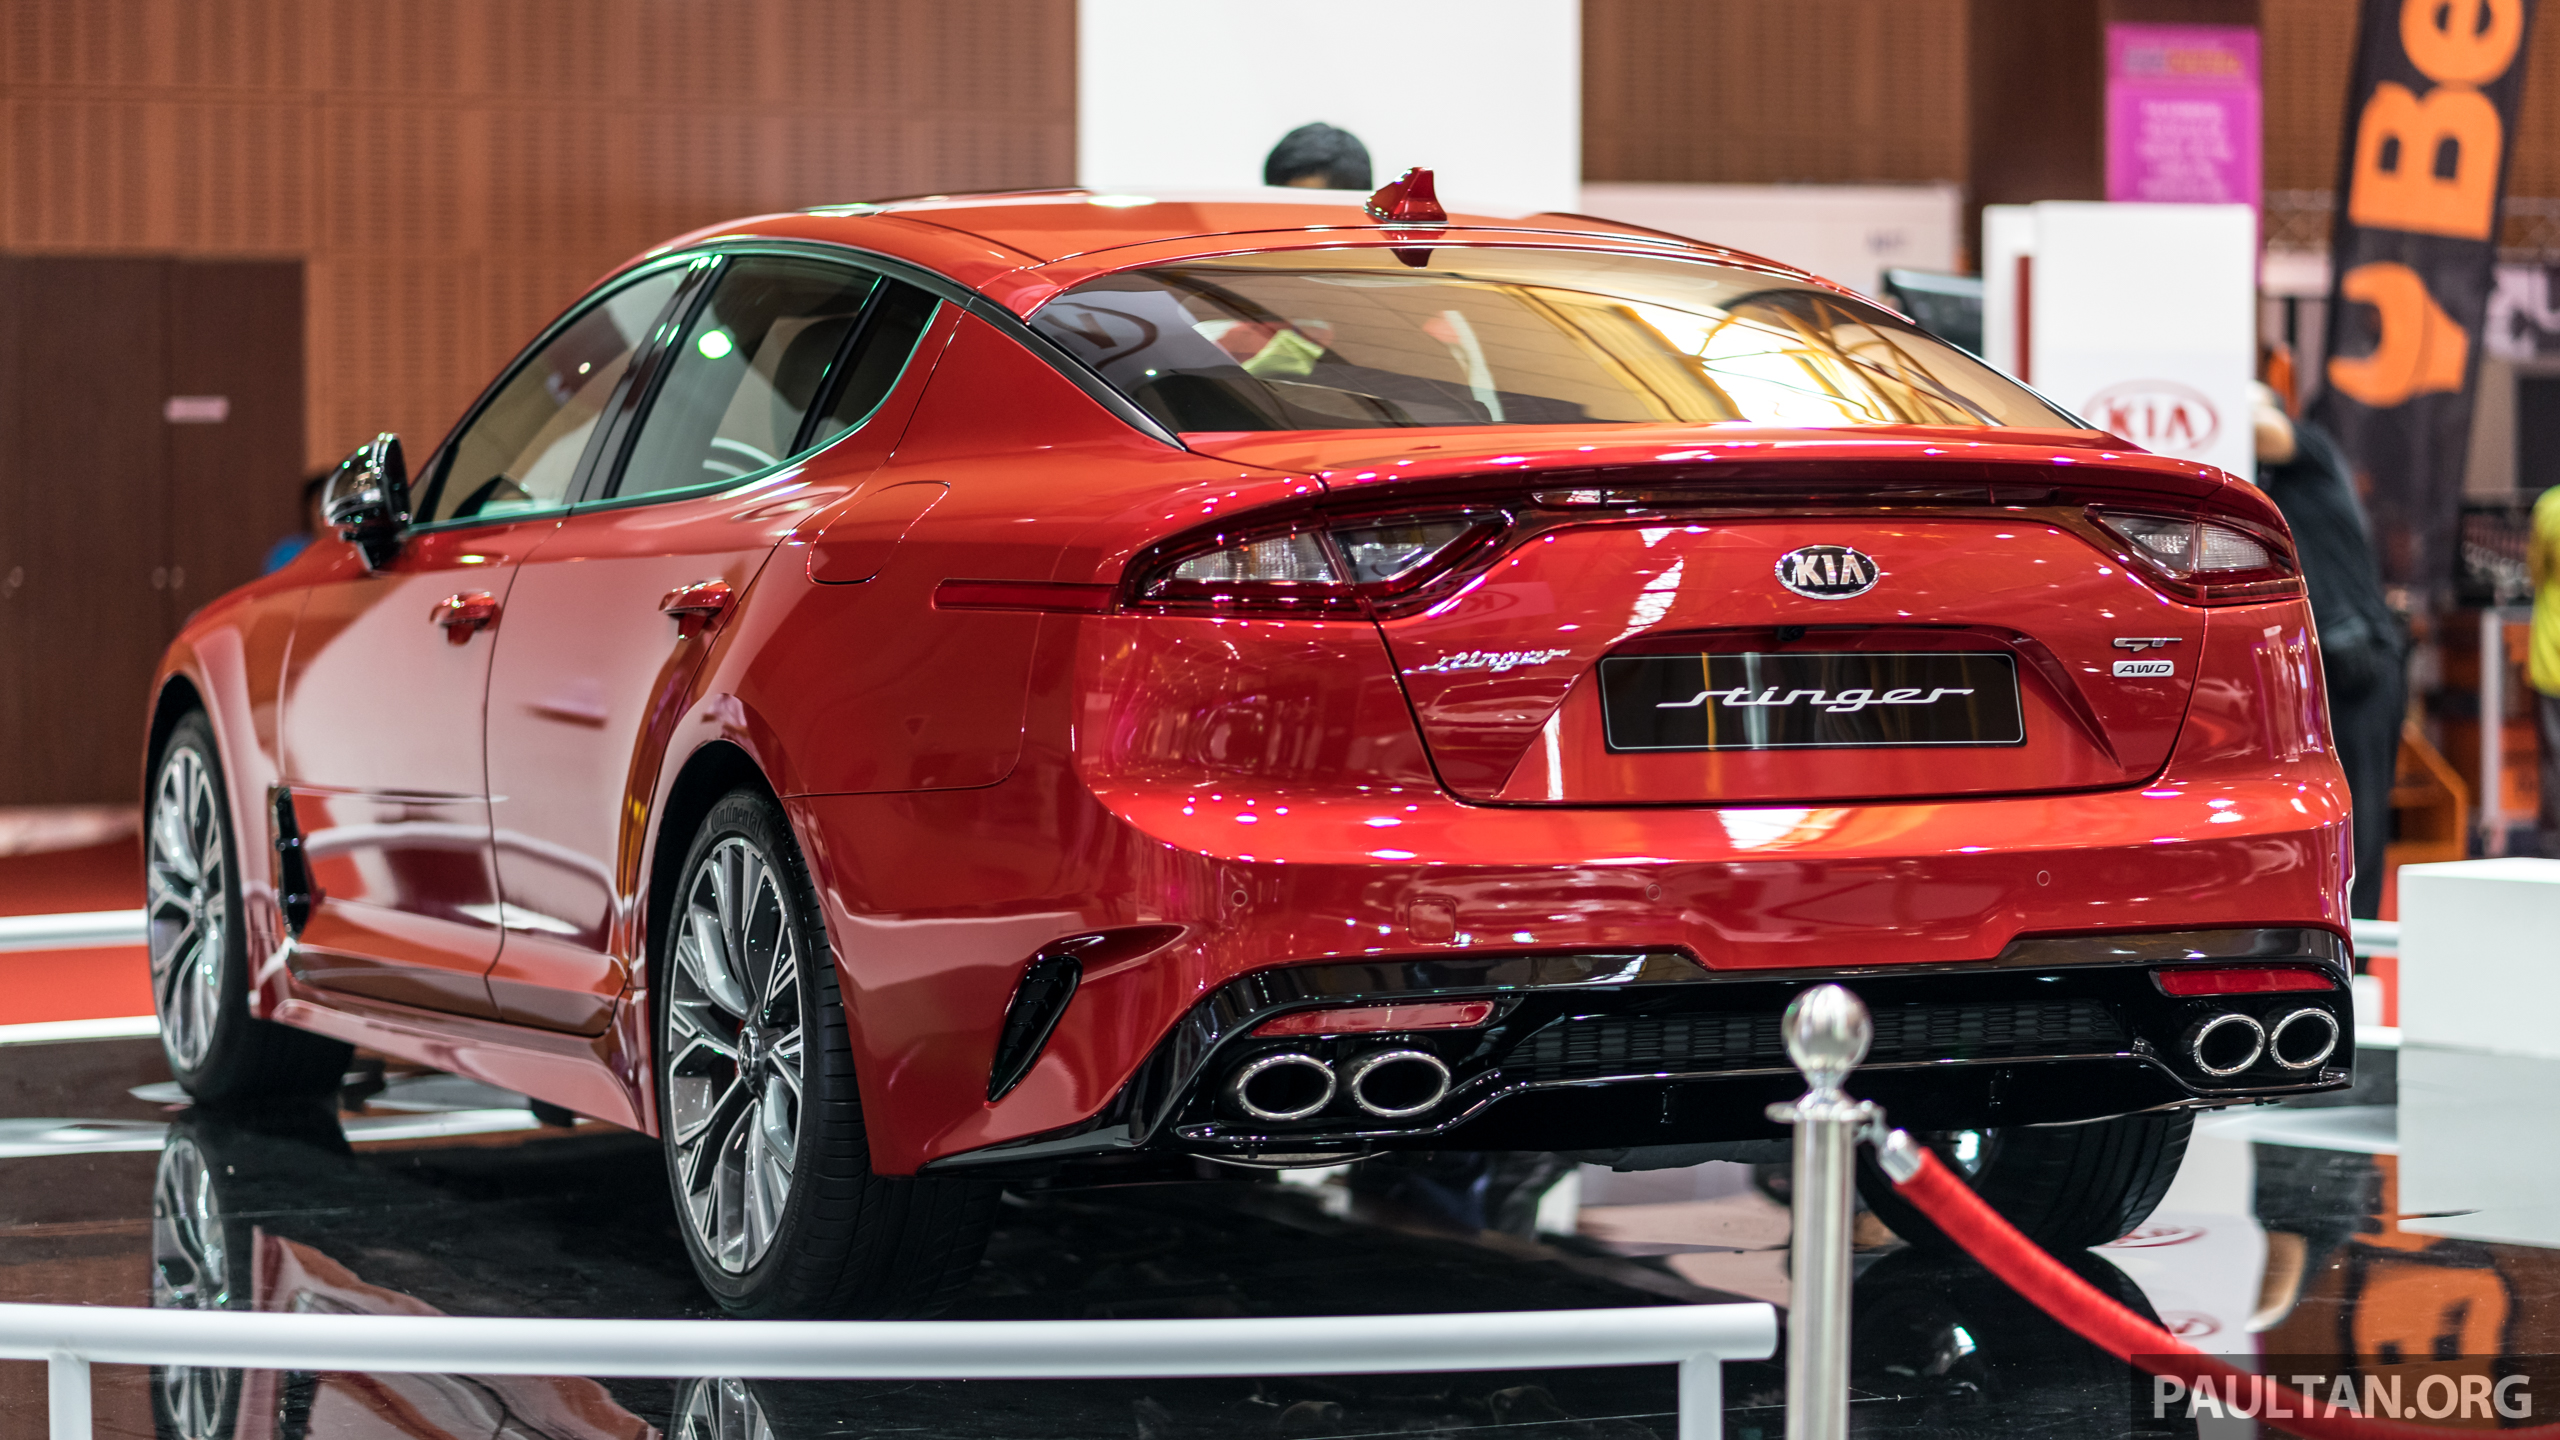 kia stinger gt 3 3l turbo v6 previewed in malaysia image 735137. Black Bedroom Furniture Sets. Home Design Ideas